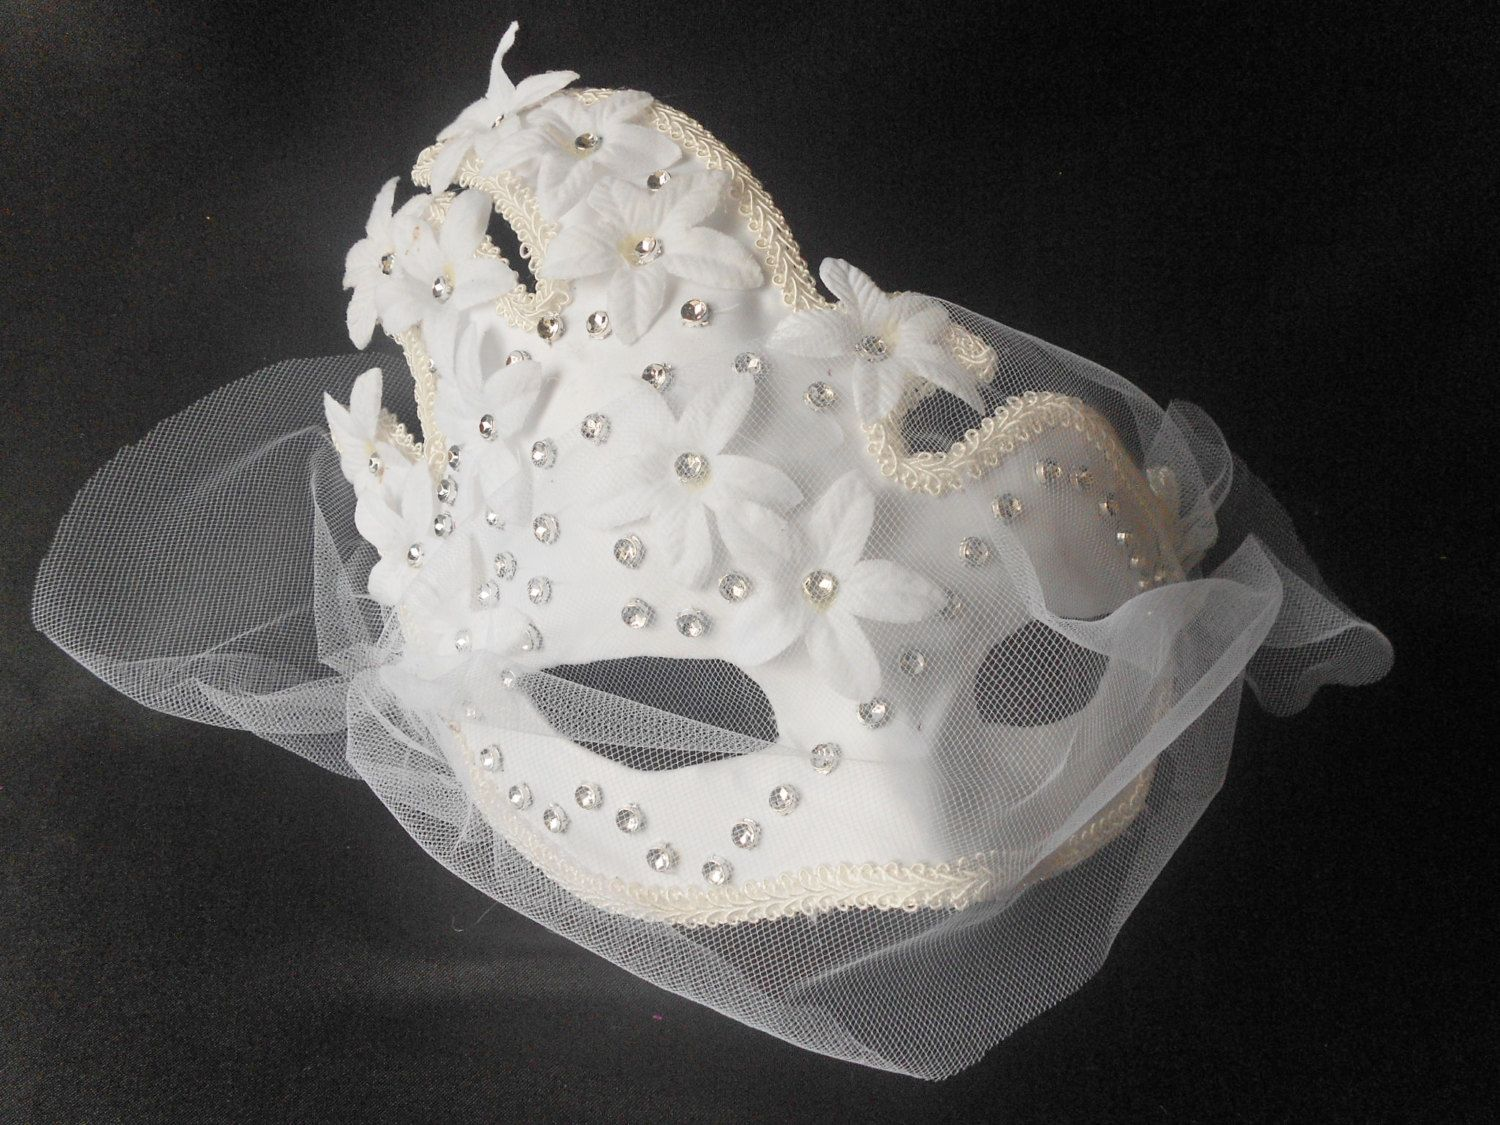 White Silver Bridal Mask, White Silver Flower Masquerade Mask, White Flowers Mask by www.IrmasElegantBoutique.etsy.com